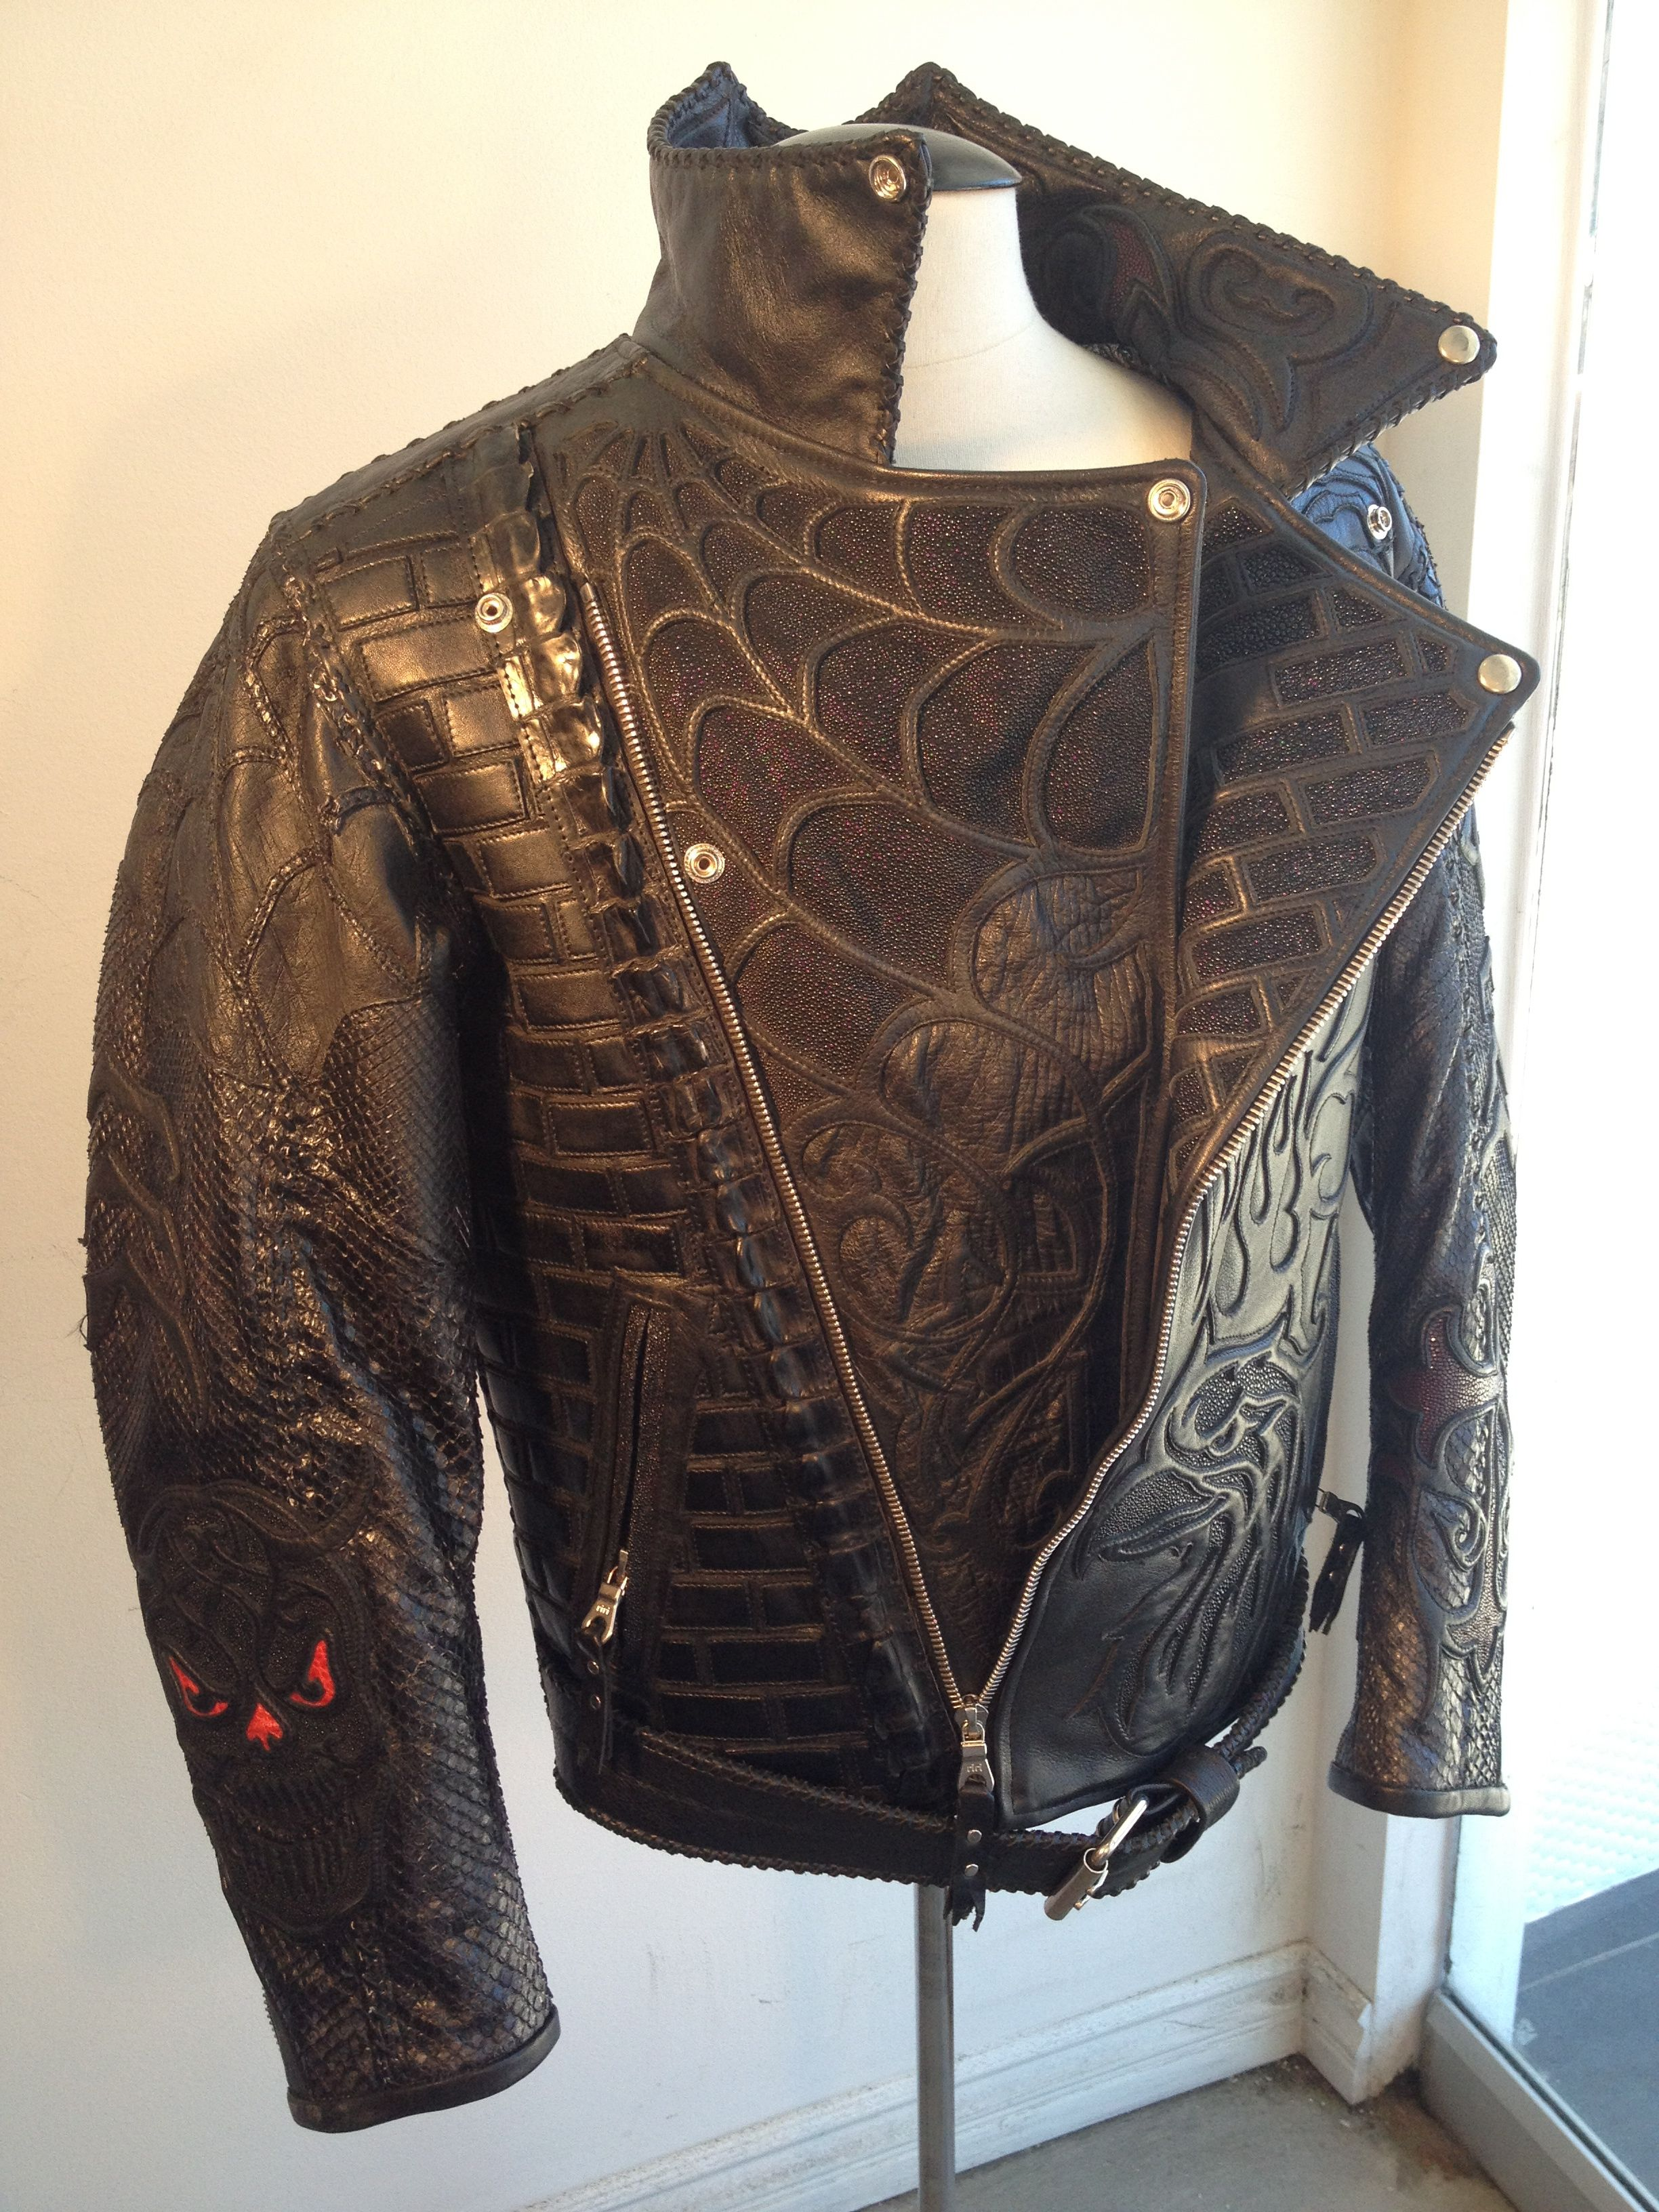 Sting Ray Spiderweb. Handmade excellence. Jacket by Logan Riese Leather